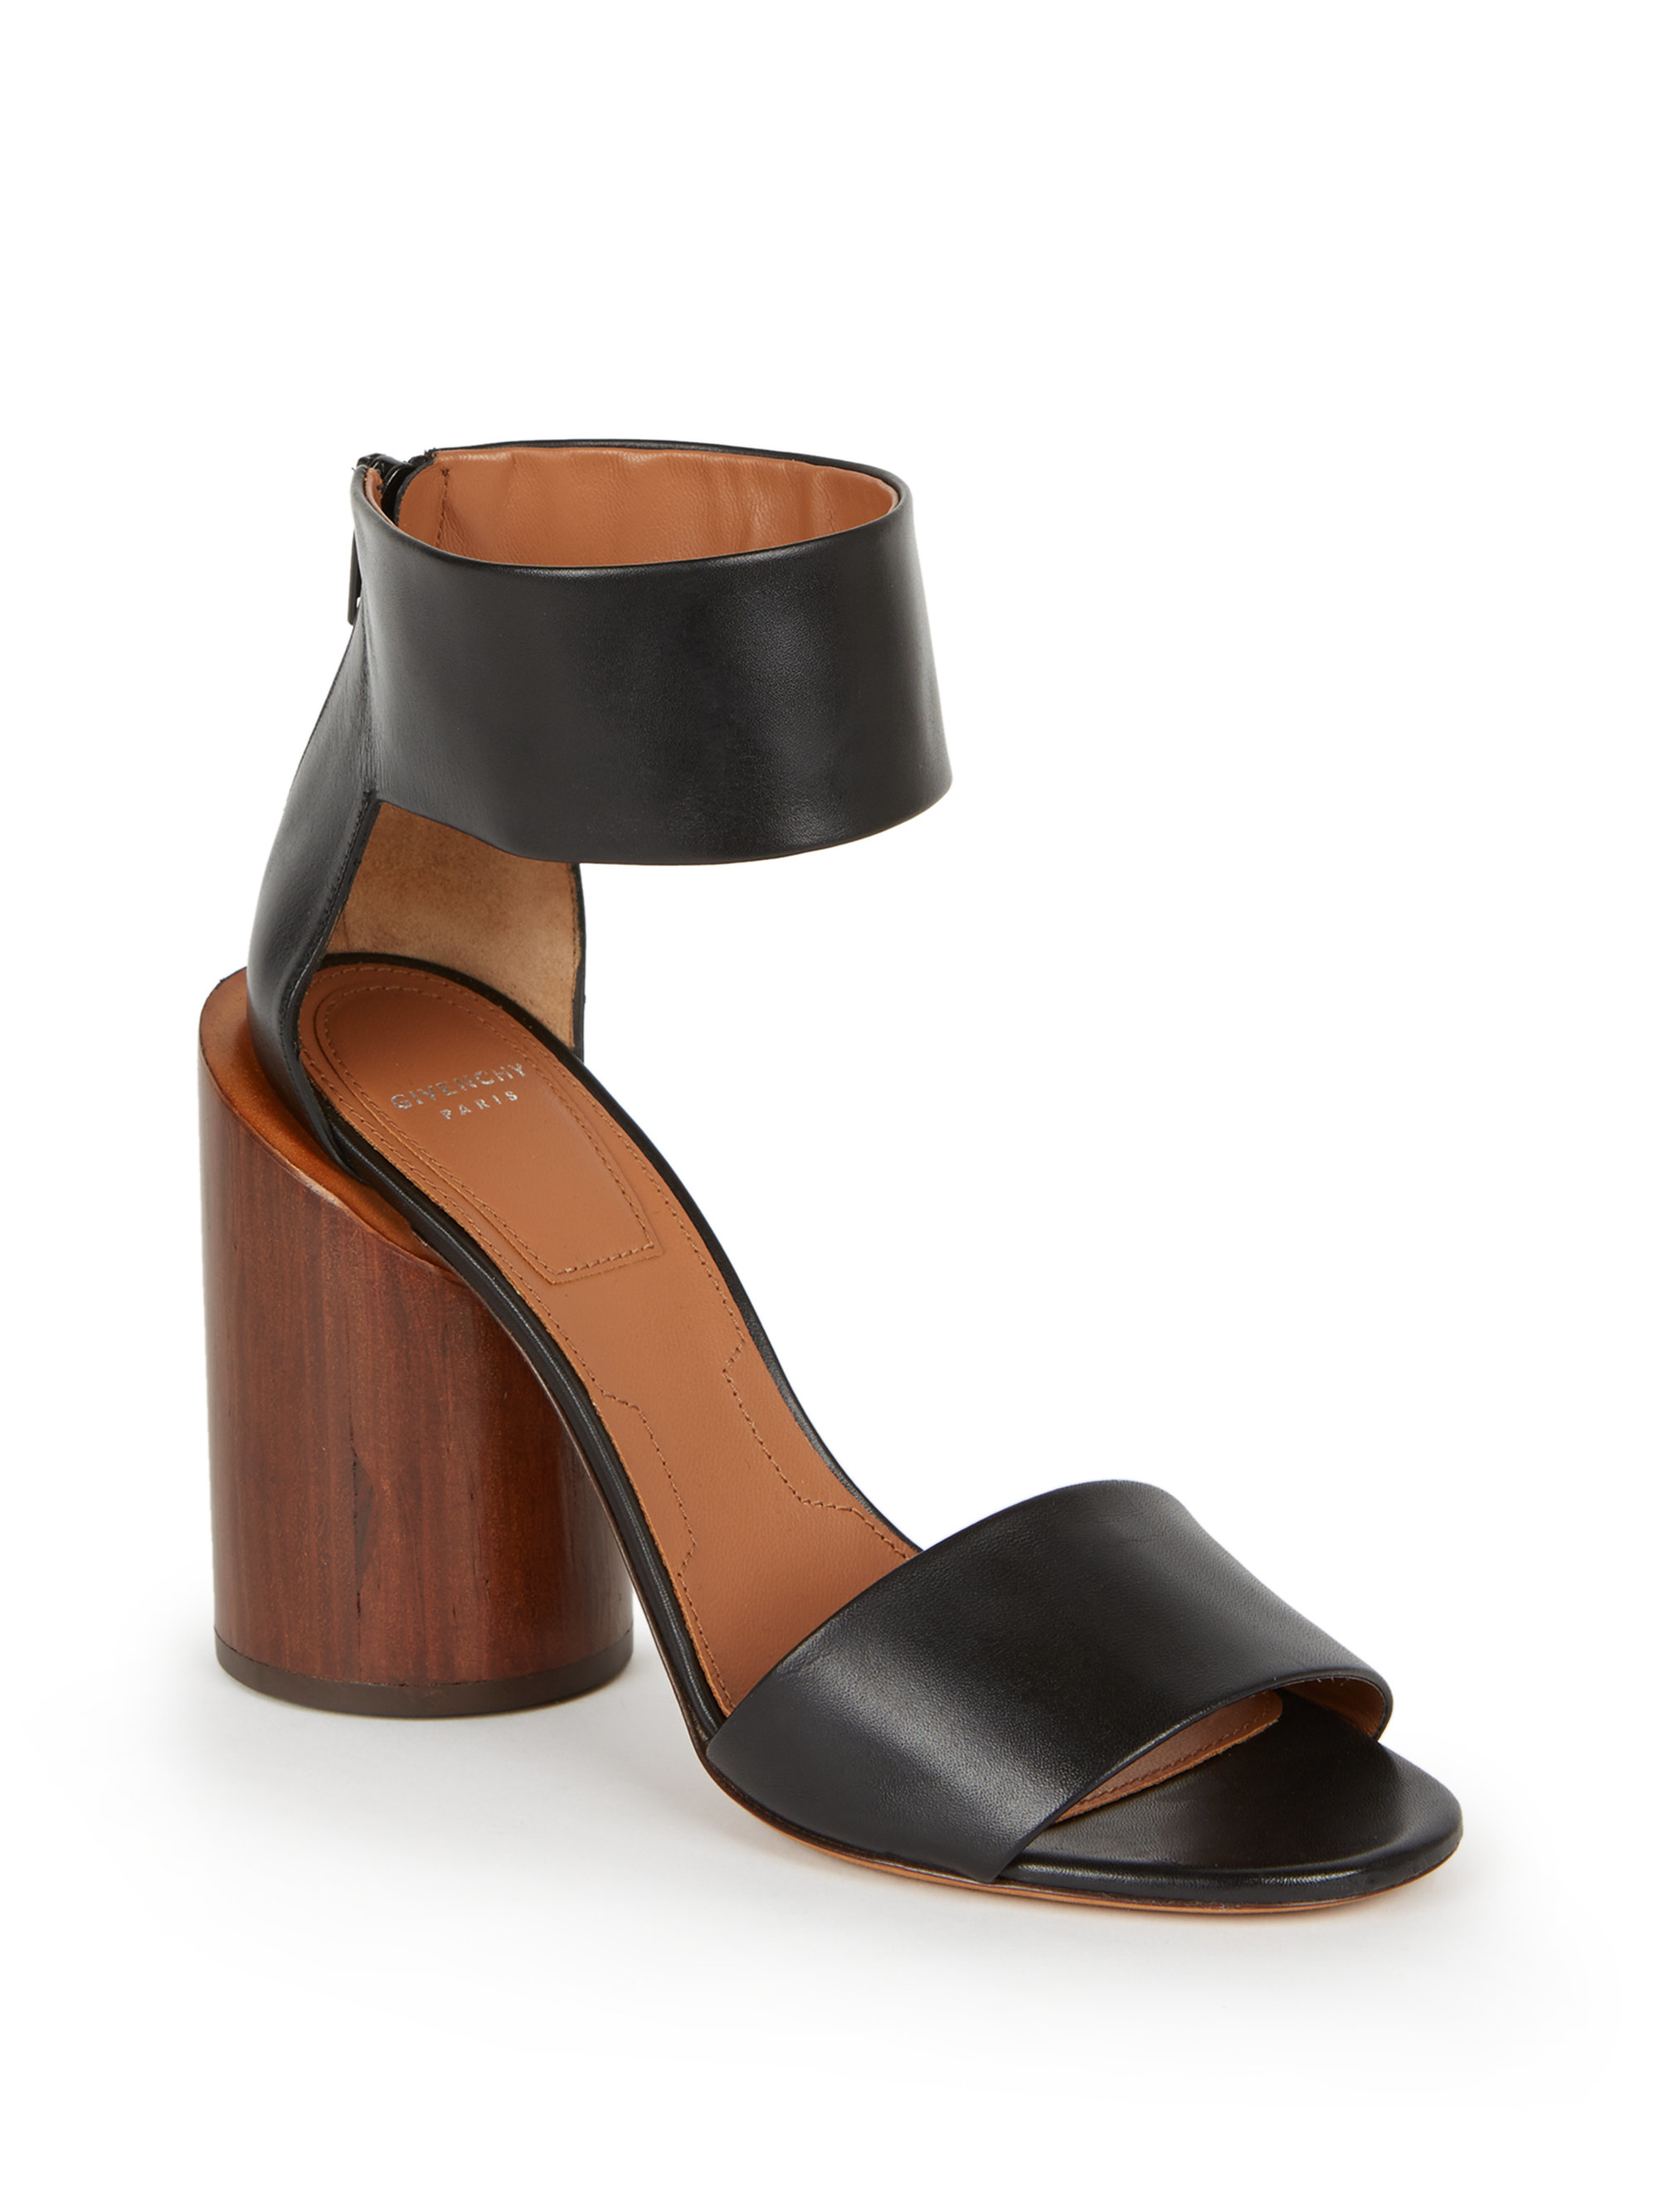 e55226b43 Givenchy 105mm Ankle-strap Leather & Wood Sandals in Black - Lyst